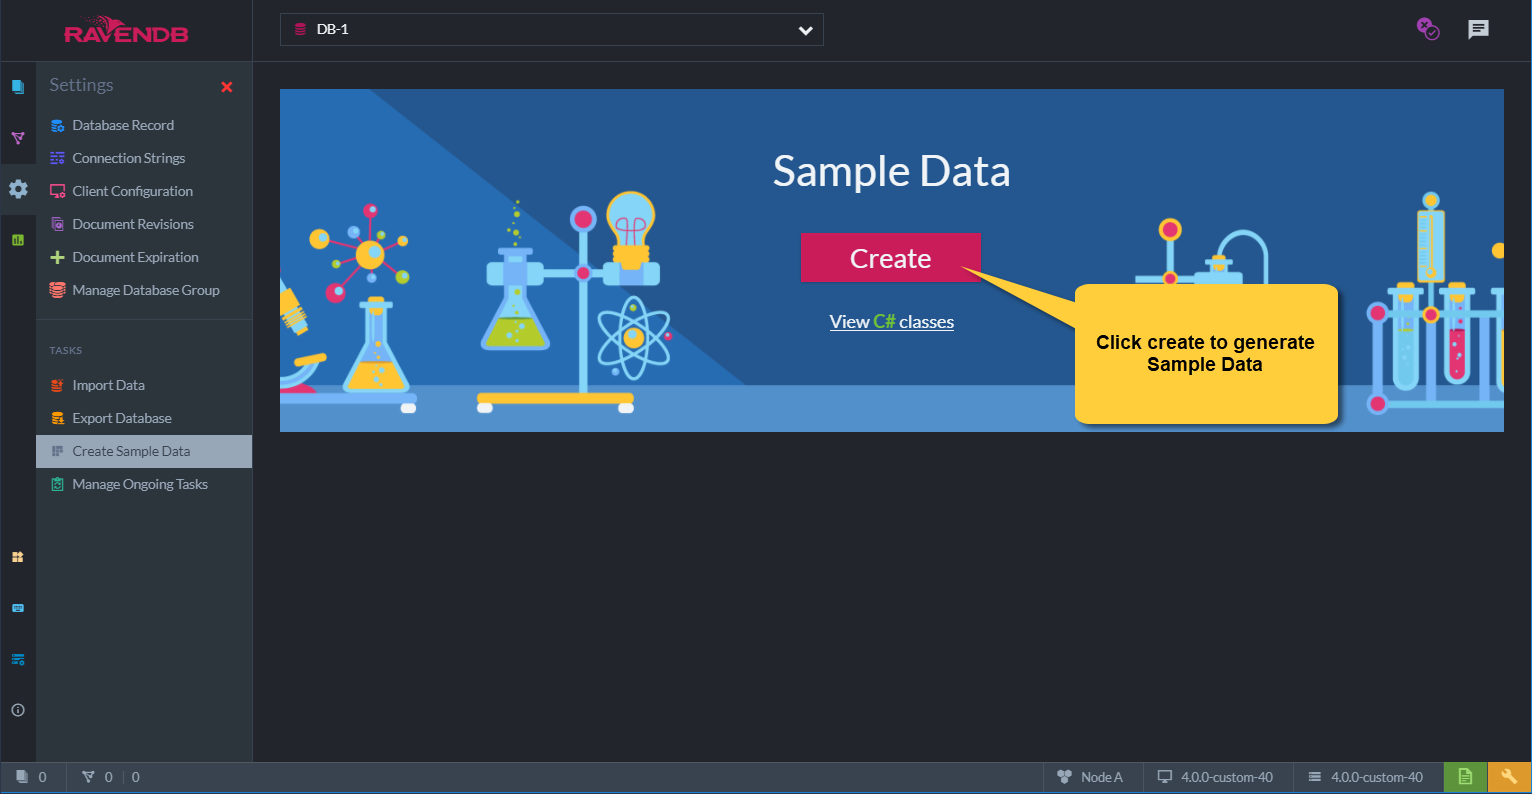 Figure 1. Create Sample Data